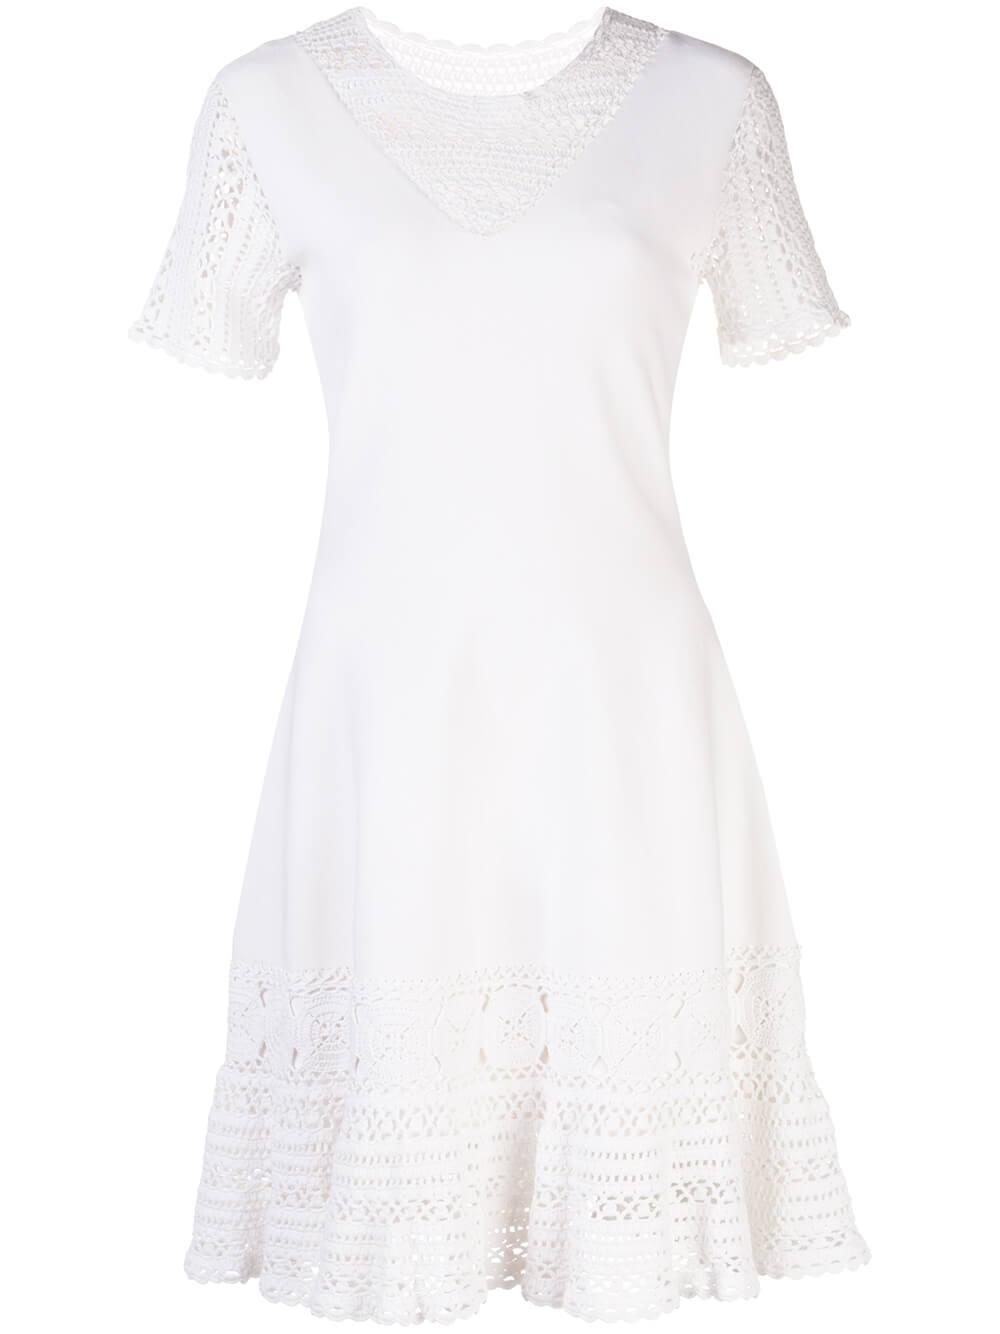 Alicia Cotton Crochet Dress